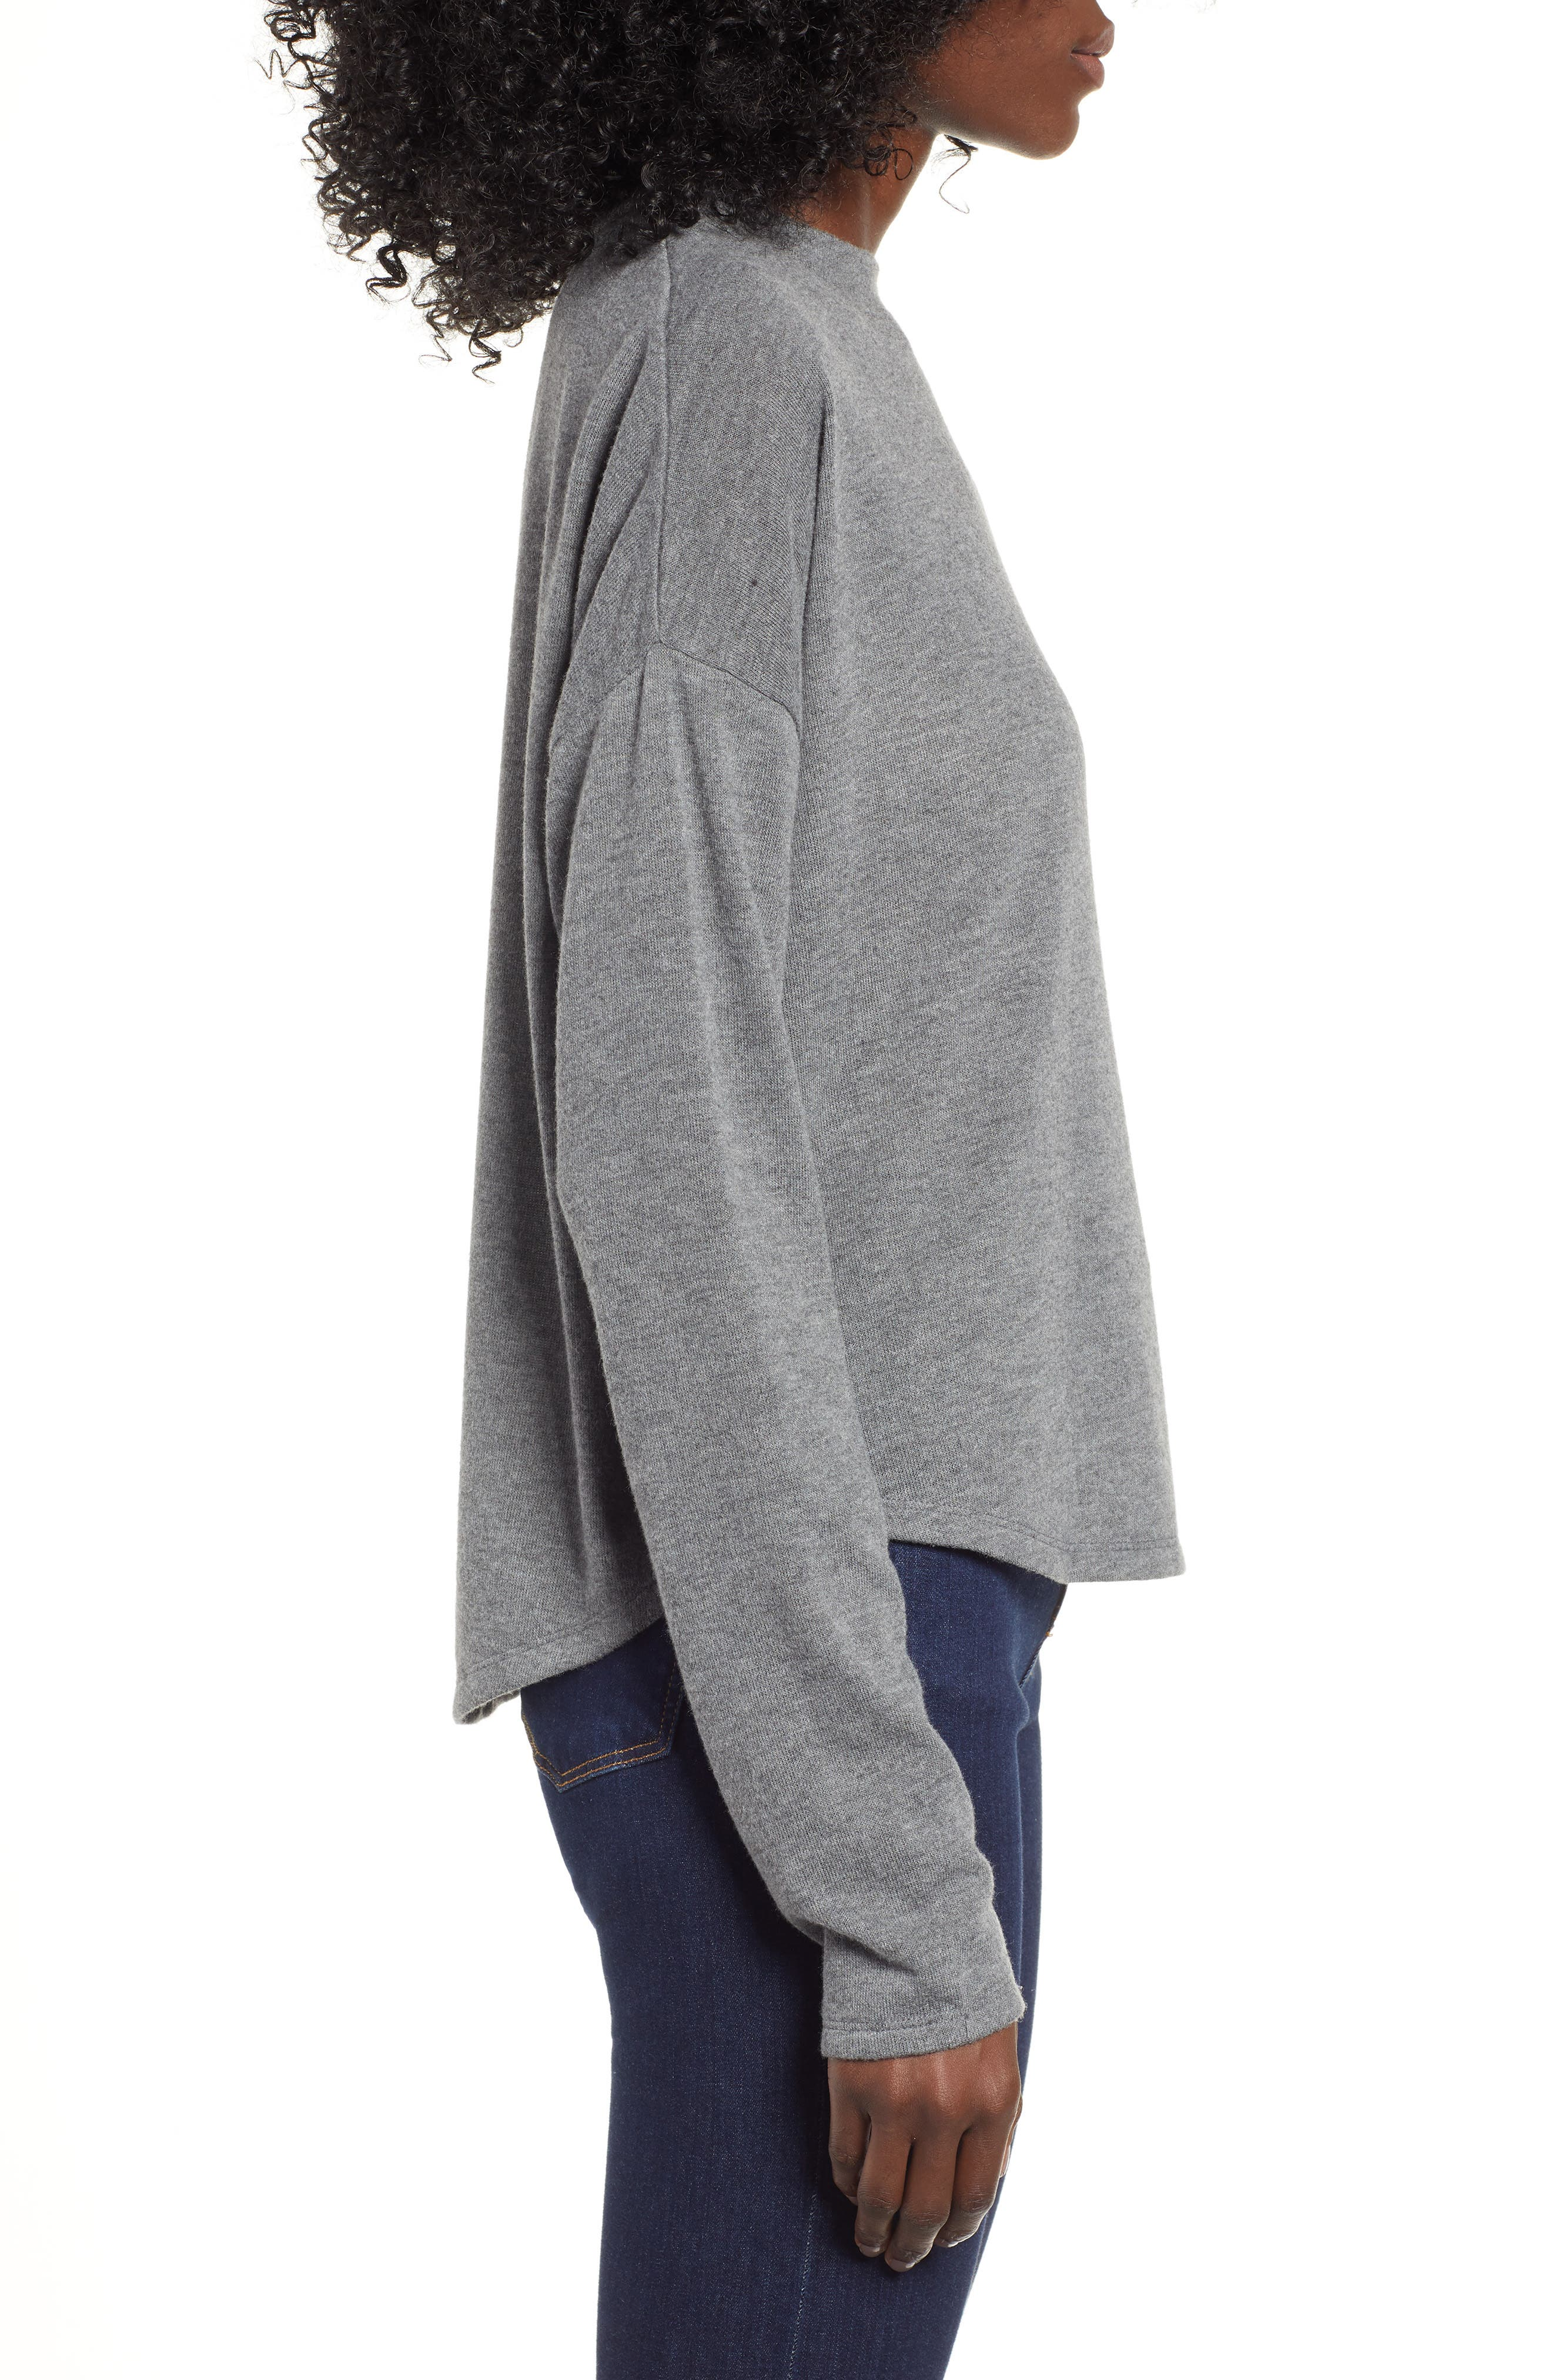 Drop Shoulder Tee,                             Alternate thumbnail 3, color,                             GREY CHARCOAL HEATHER